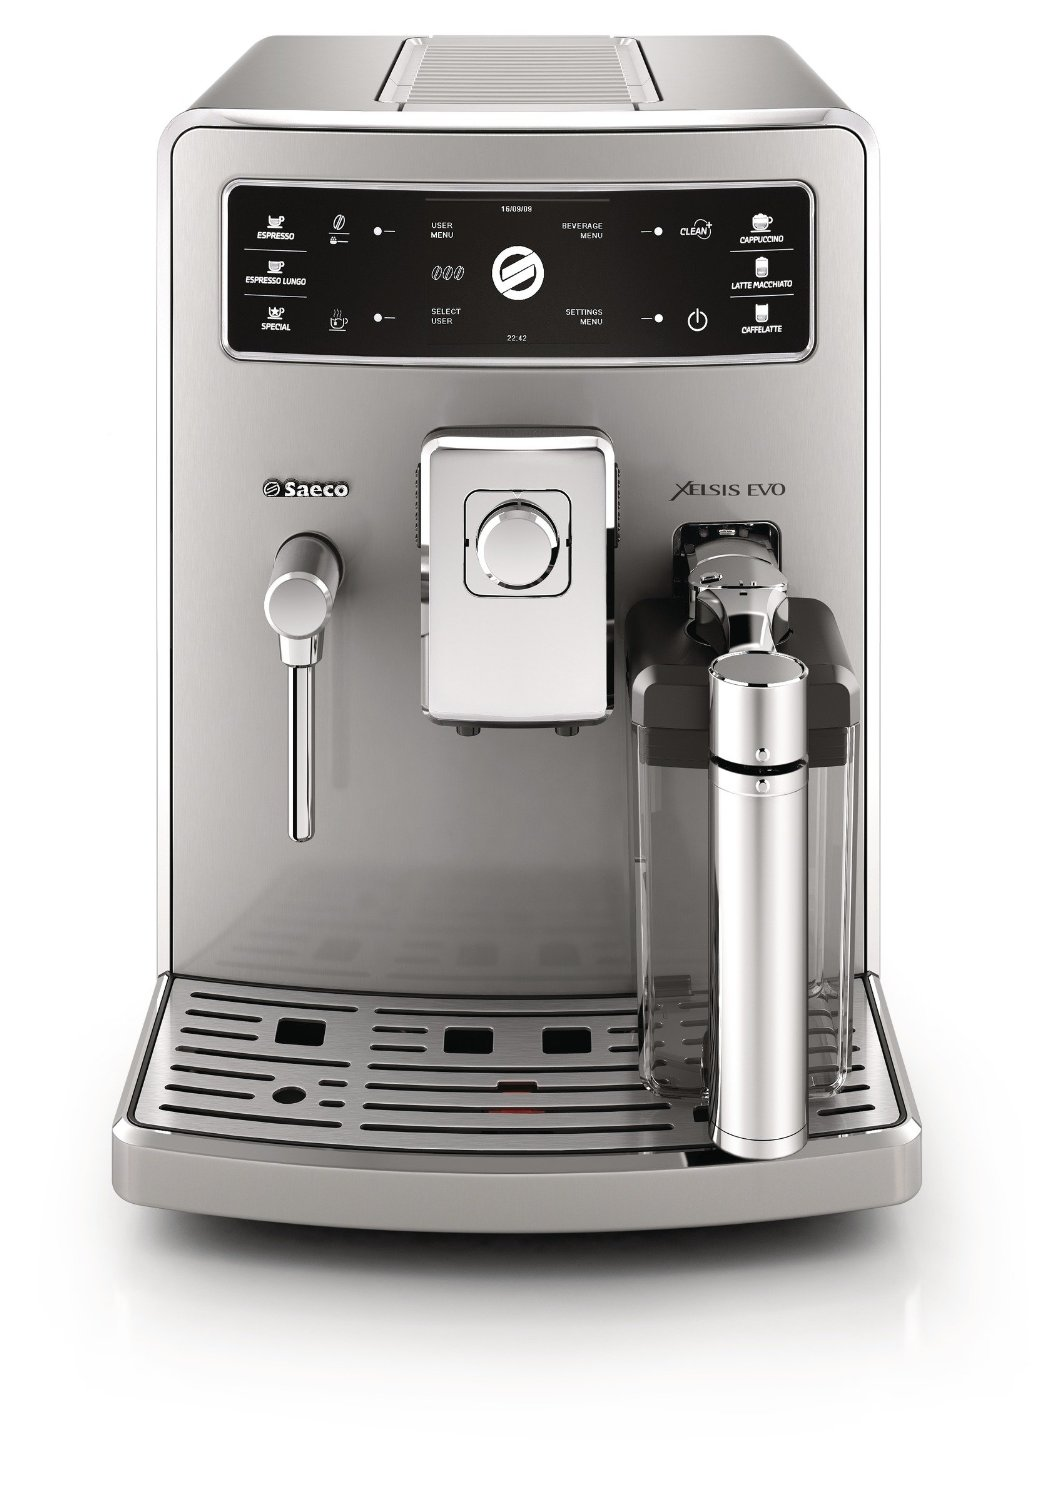 saeco minuto superautomatic espresso machine